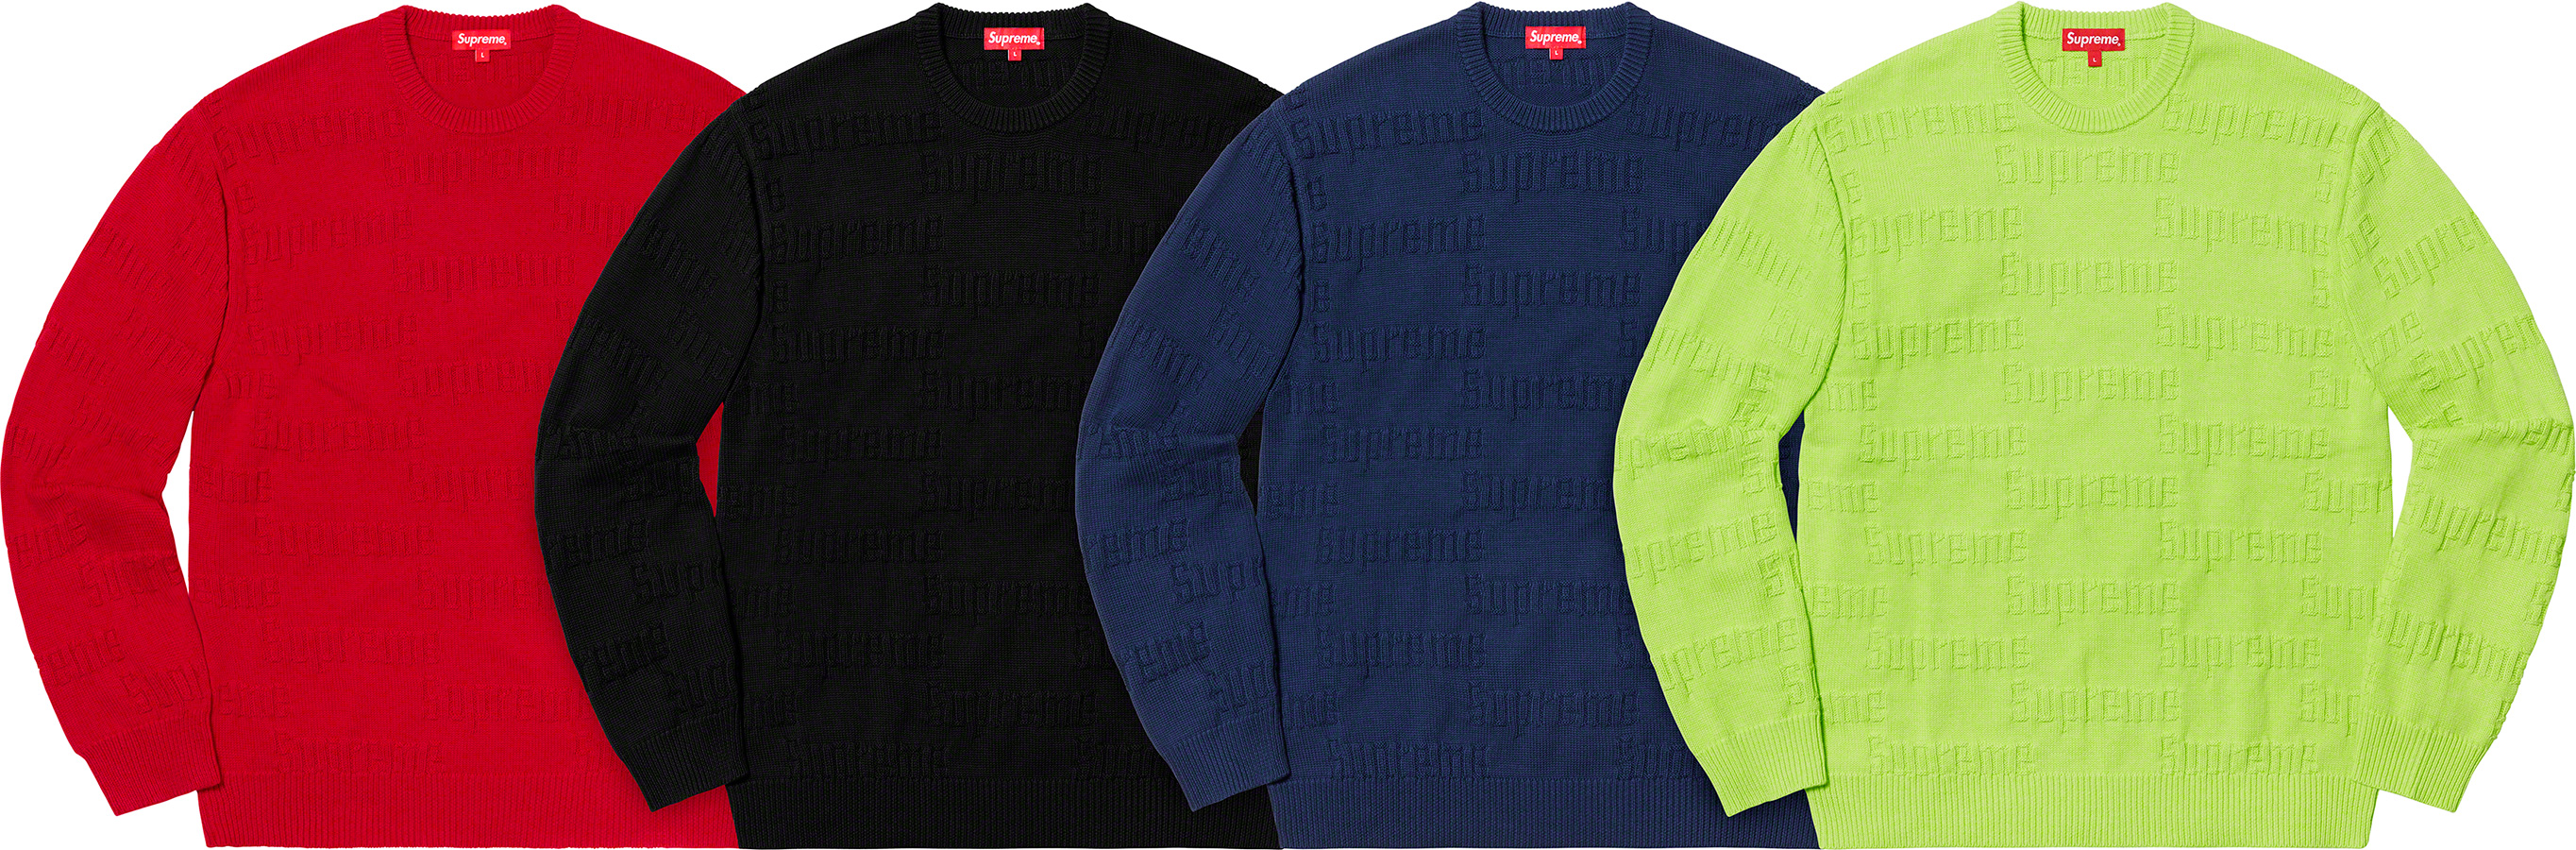 supreme-19aw-19fw-fall-winter-raised-logo-sweater